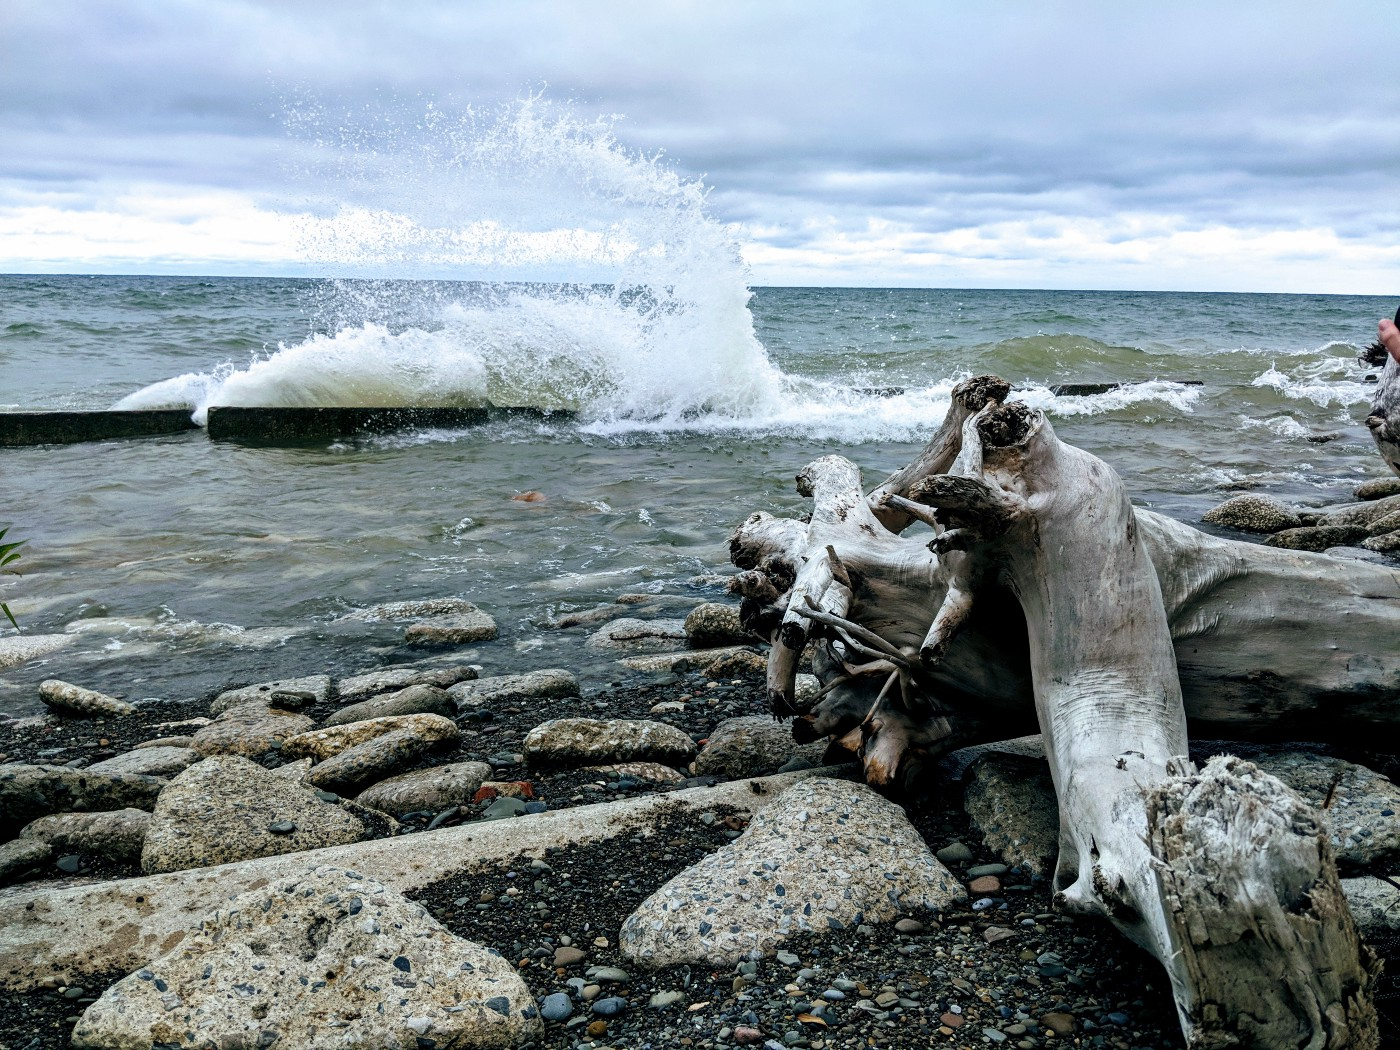 I Second That Emotion, shown here in drab overcast beach colors with the lake churning up a gnarly crashing wave overtaking the breakwall.